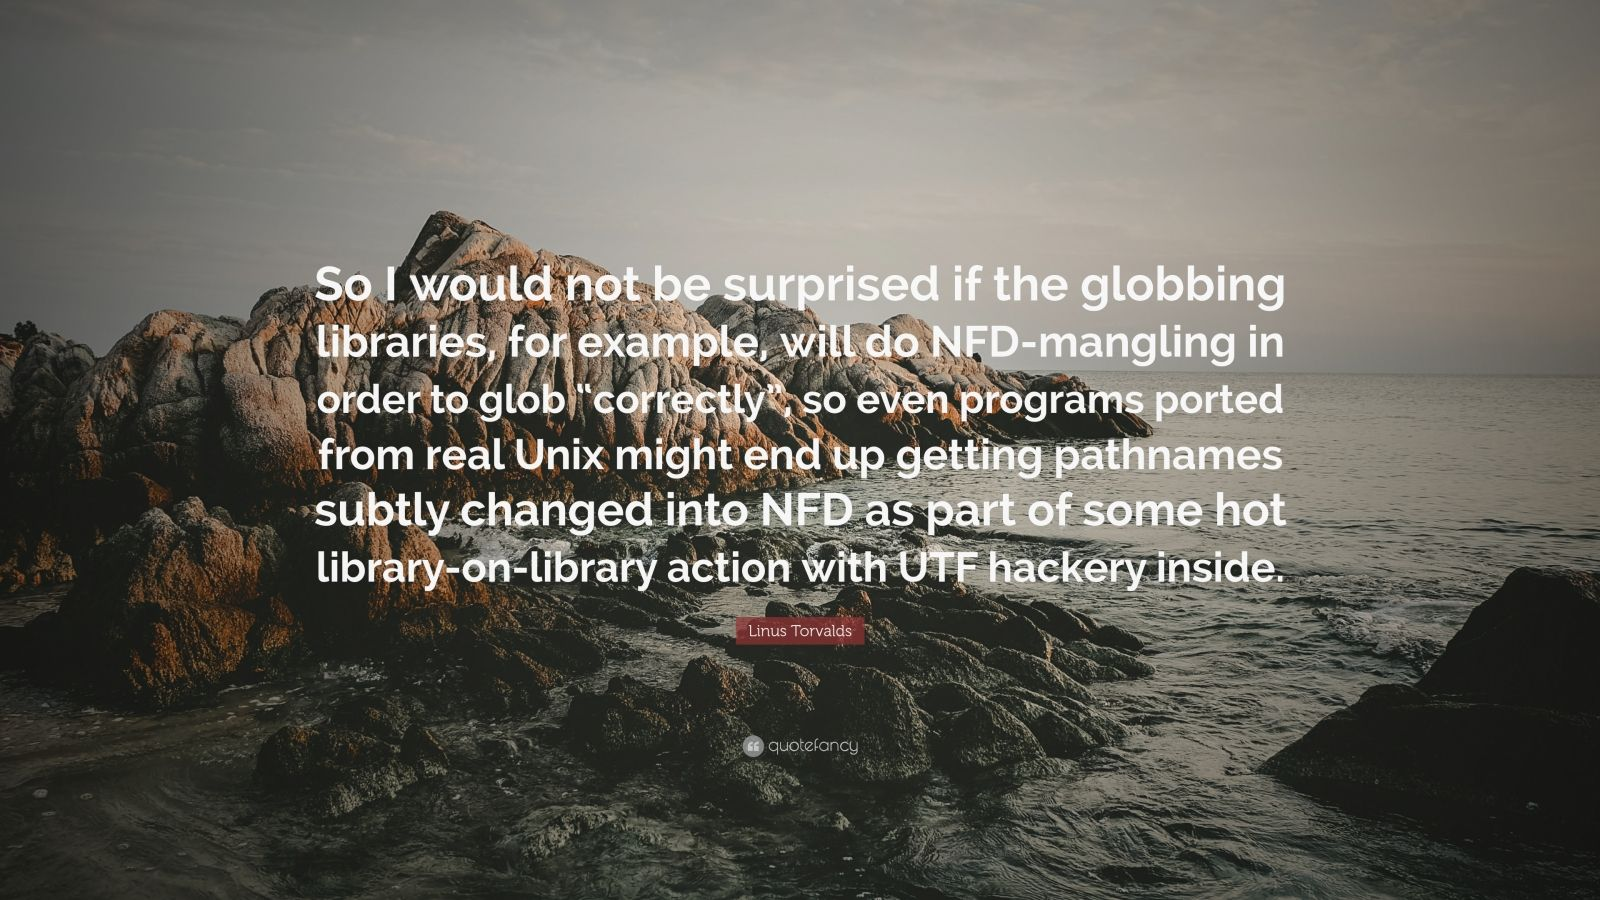 """Linus Torvalds Quote: """"So I would not be surprised if the globbing libraries, for example, will do NFD-mangling in order to glob """"correctly"""", so even programs ported from real Unix might end up getting pathnames subtly changed into NFD as part of some hot library-on-library action with UTF hackery inside."""""""